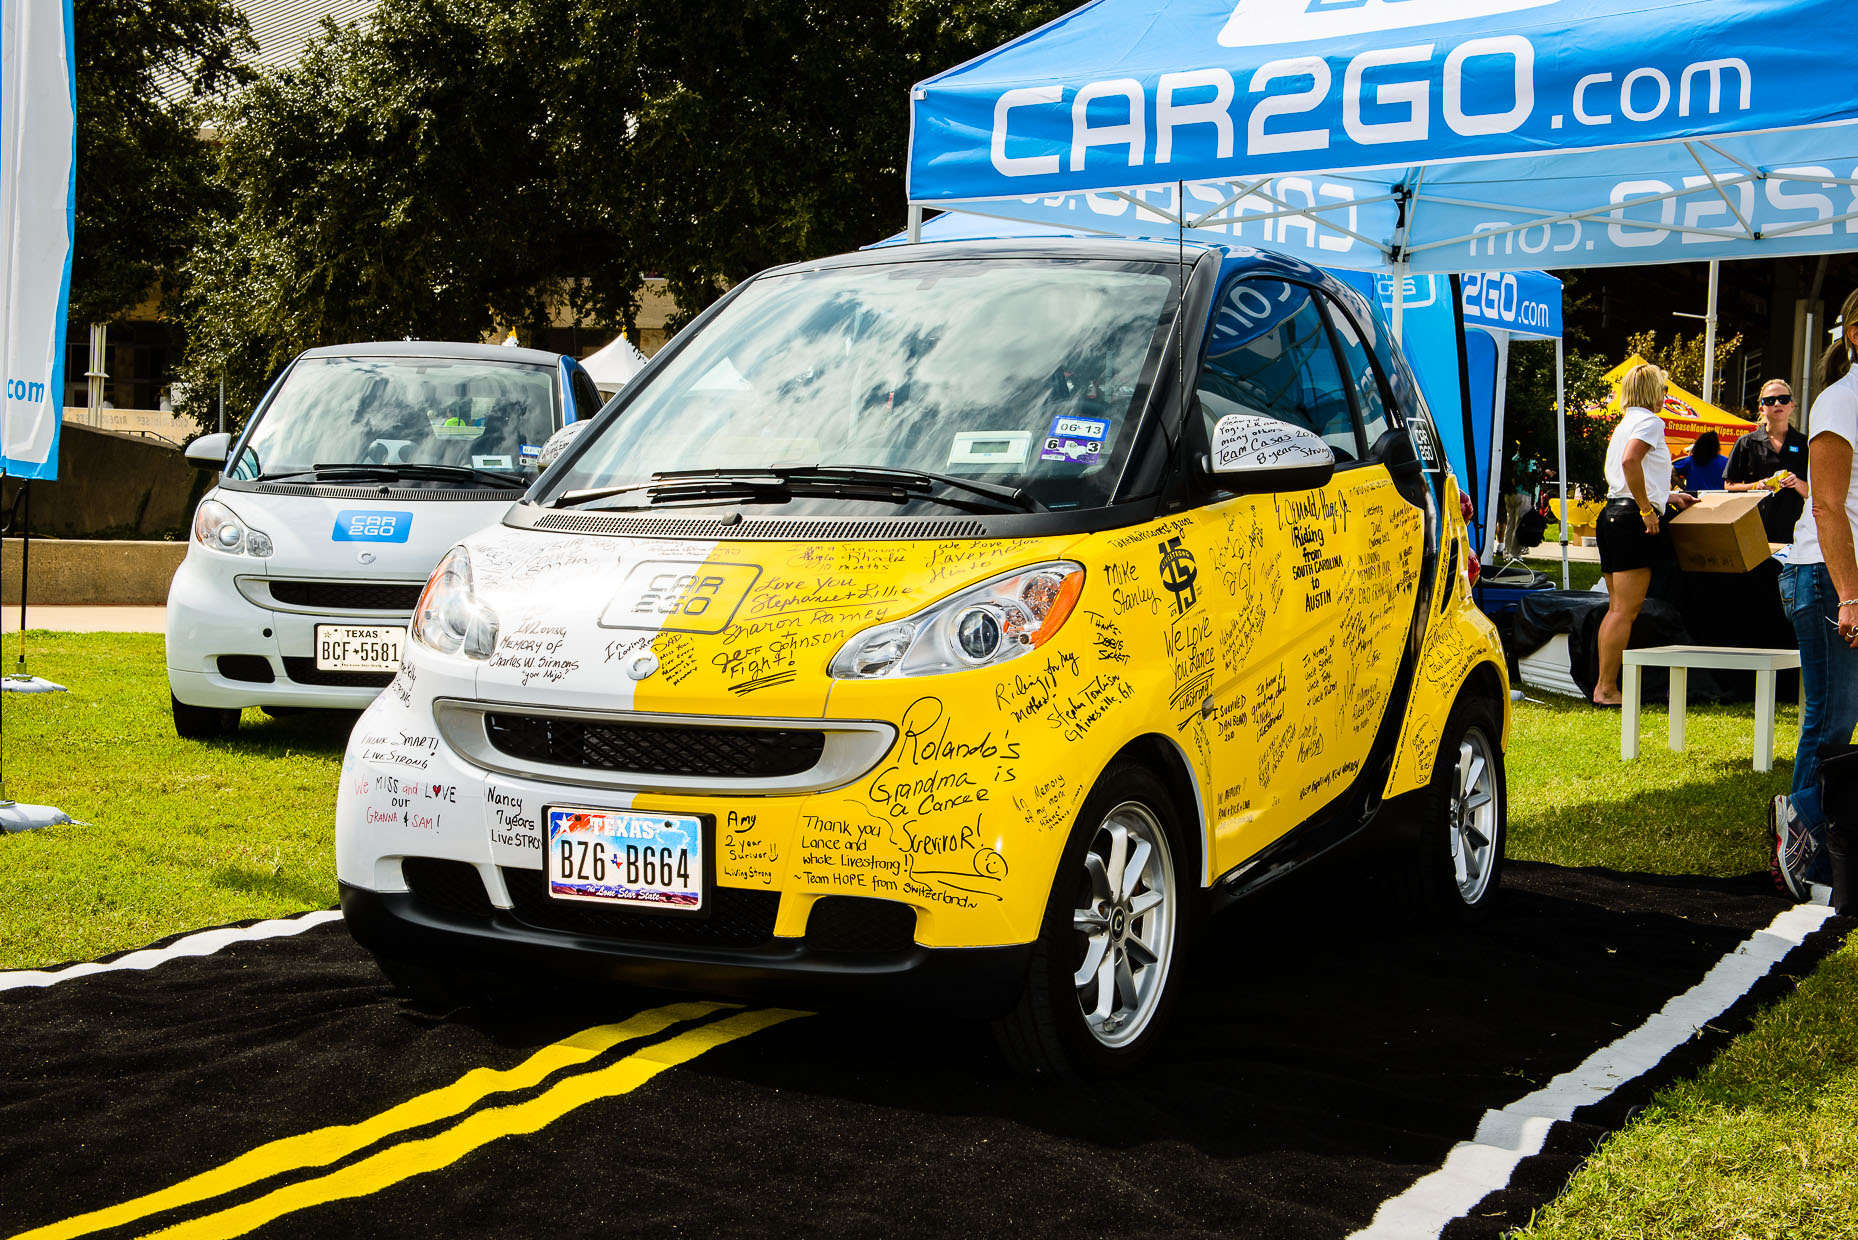 Downtown-Austin-Commercial-Photographer-car2go-fundraiser-livestrong.jpg